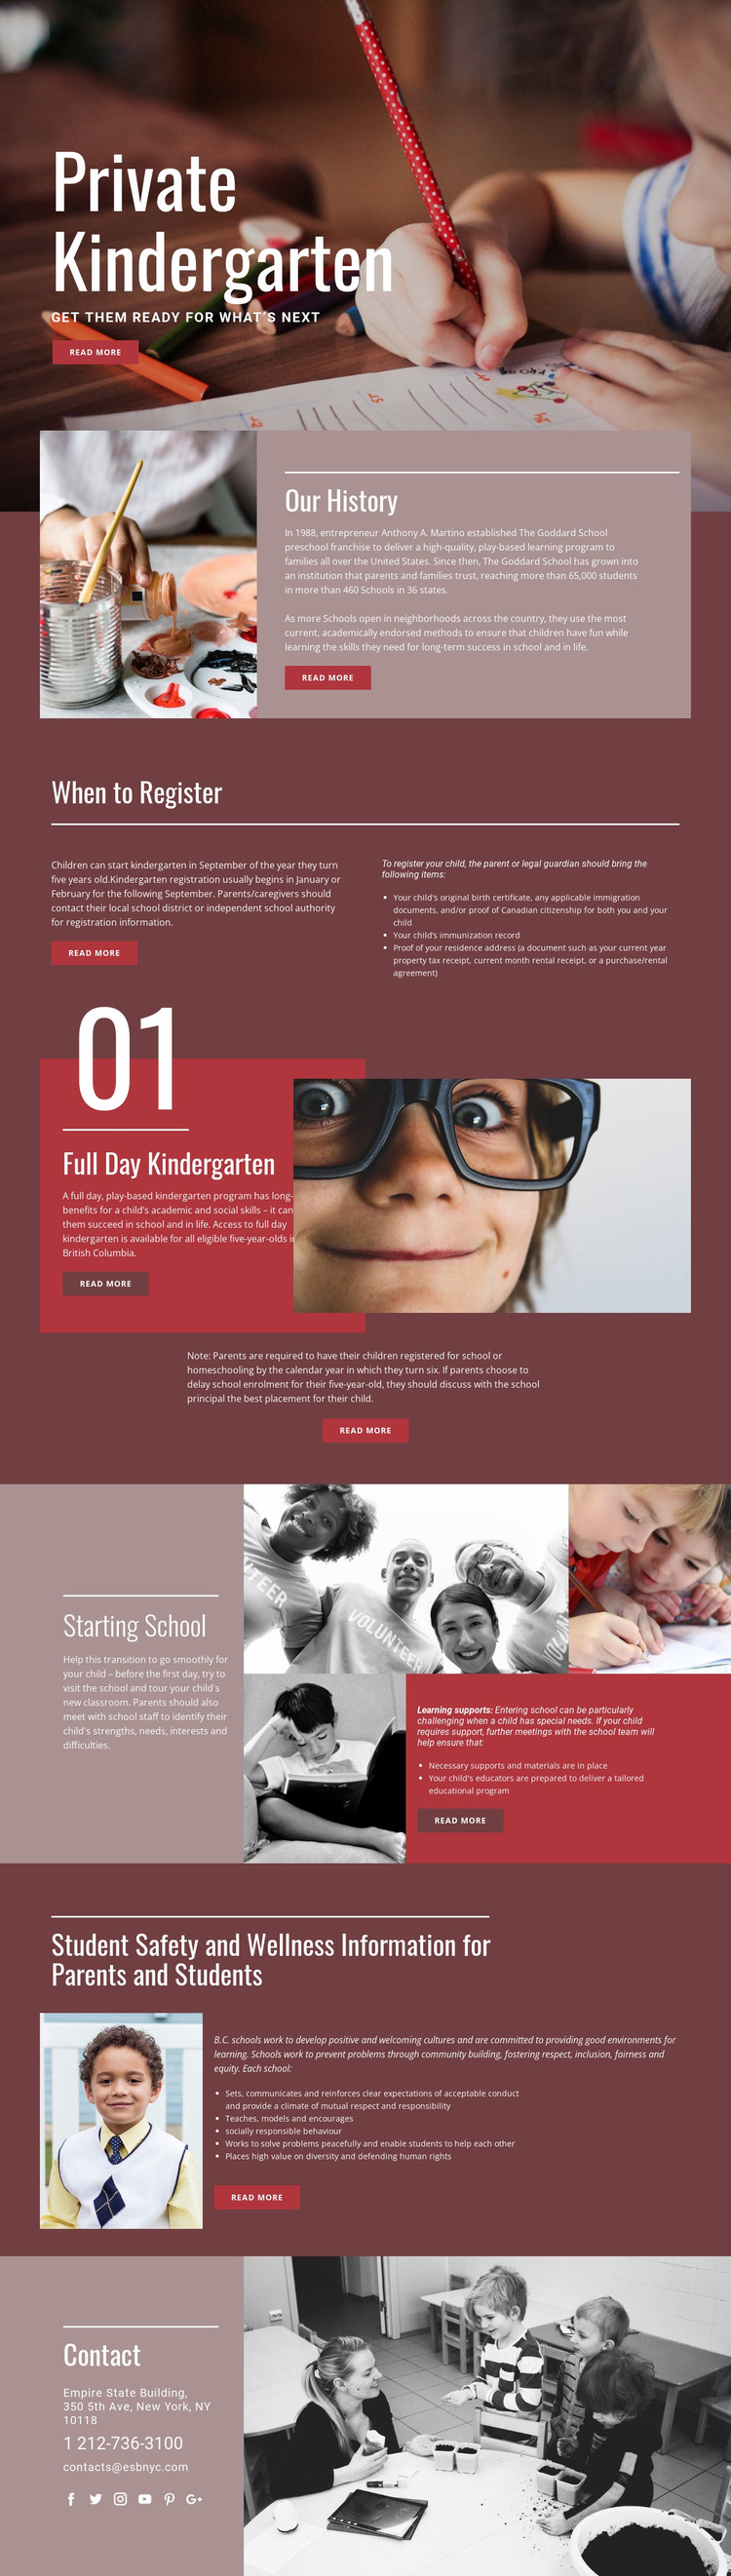 Private elementary education Website Builder Templates